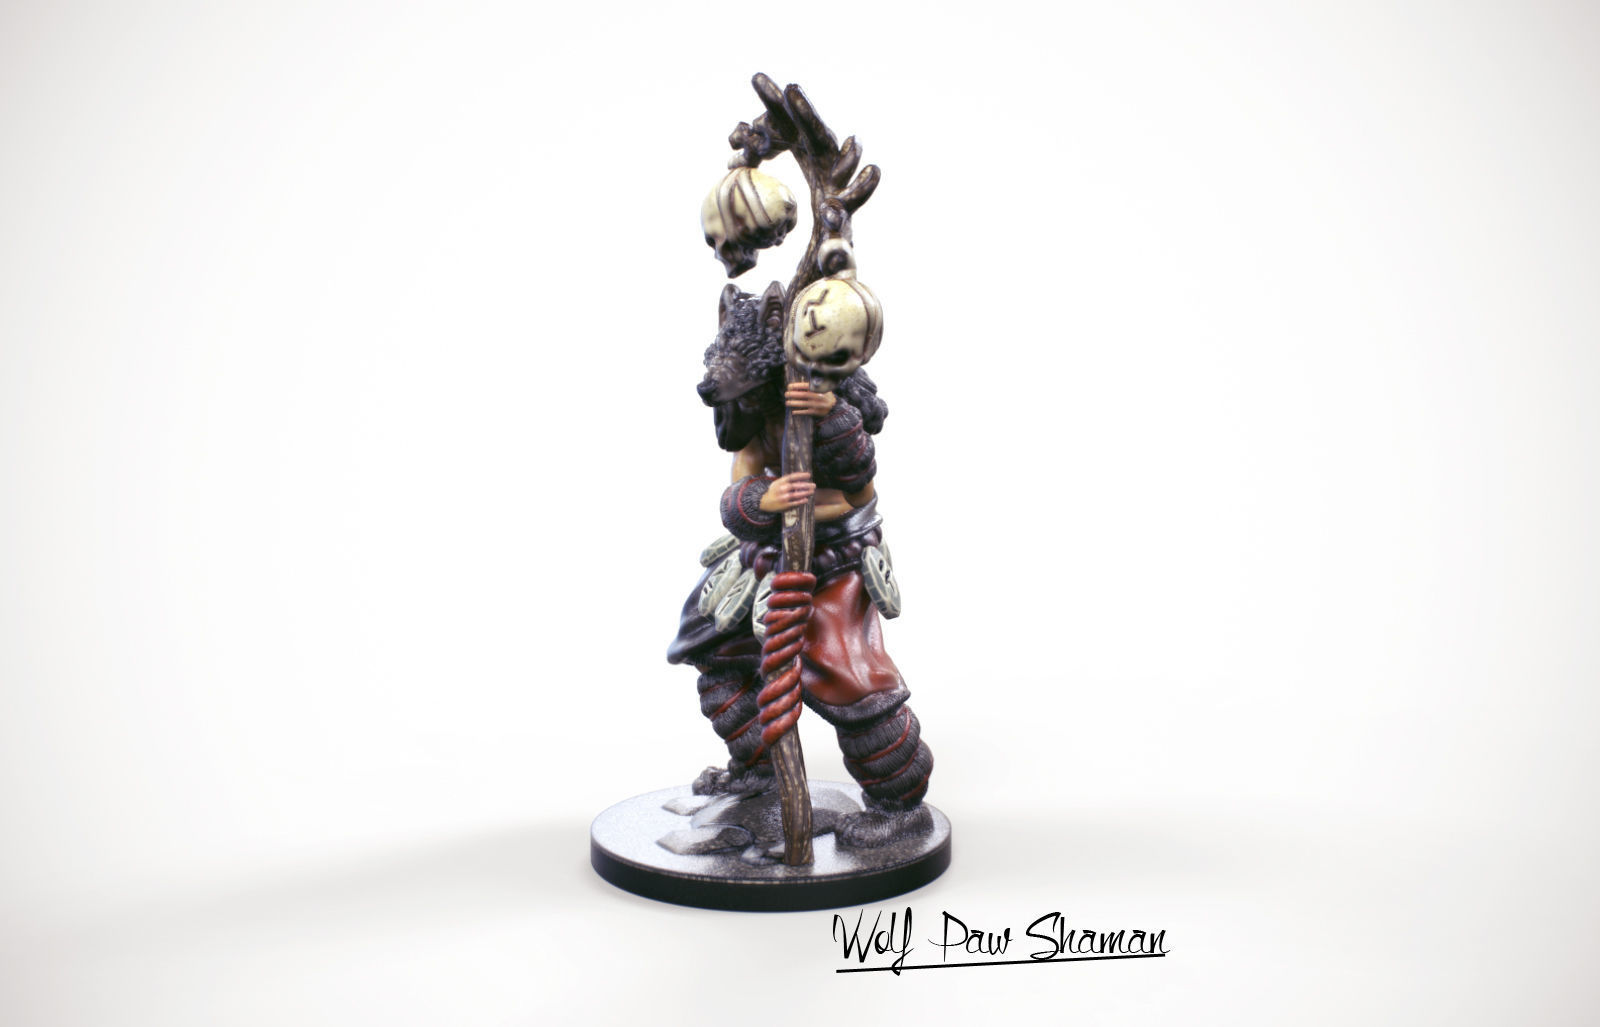 3d Printable miniature Wolf paw Shaman 32mm